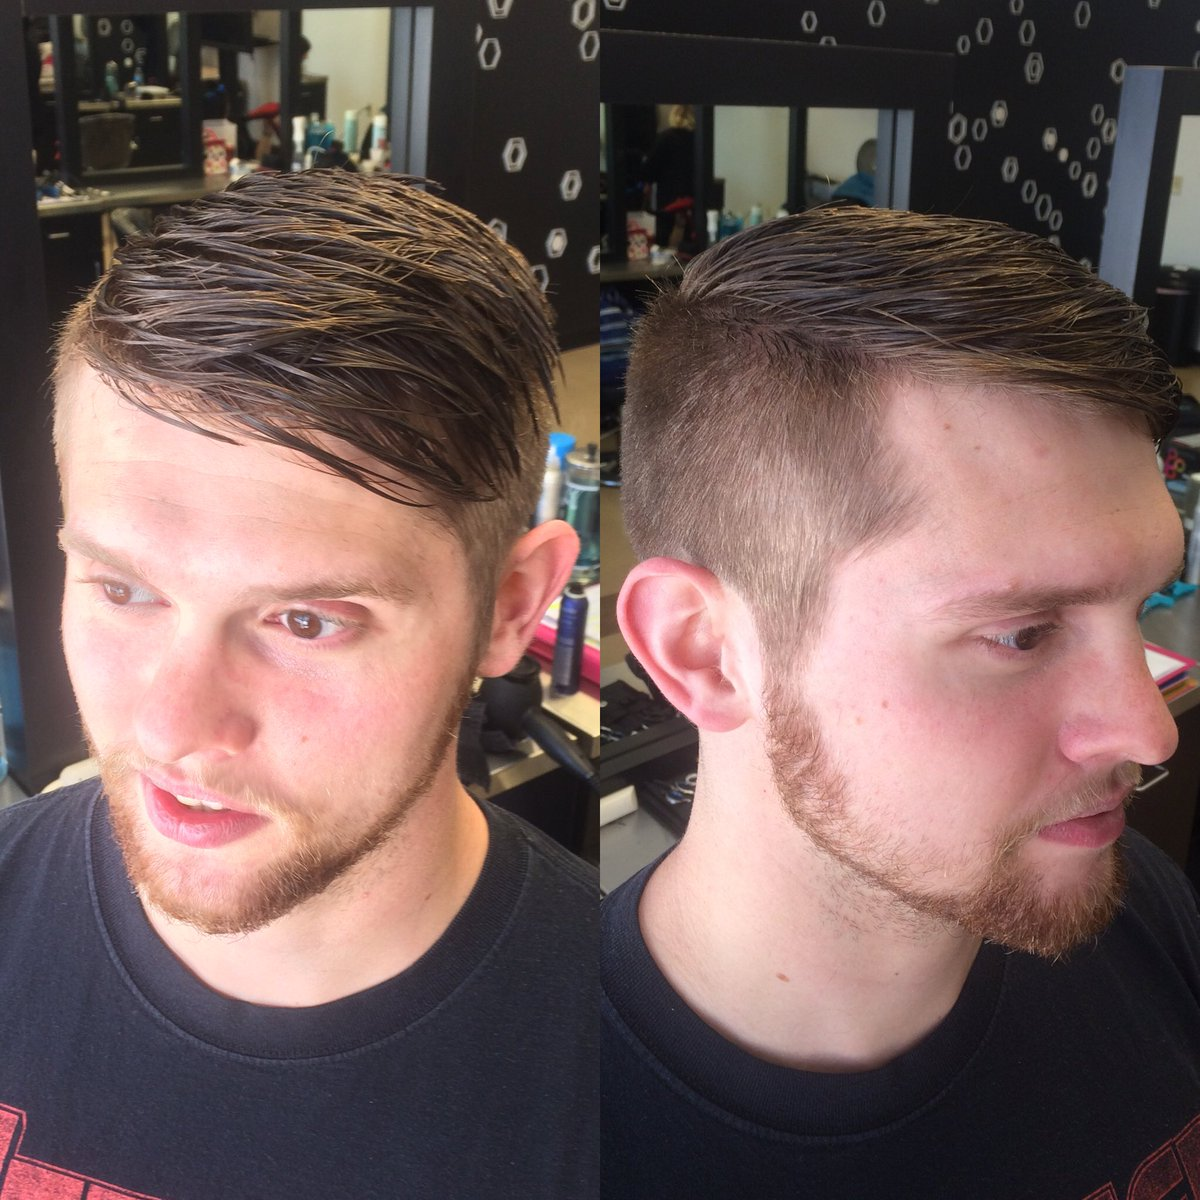 Char On Twitter Men S Haircut To Create Texture And Trim Around The Ears And Neck Hair Haircut Barber Menshaircut Mens Style